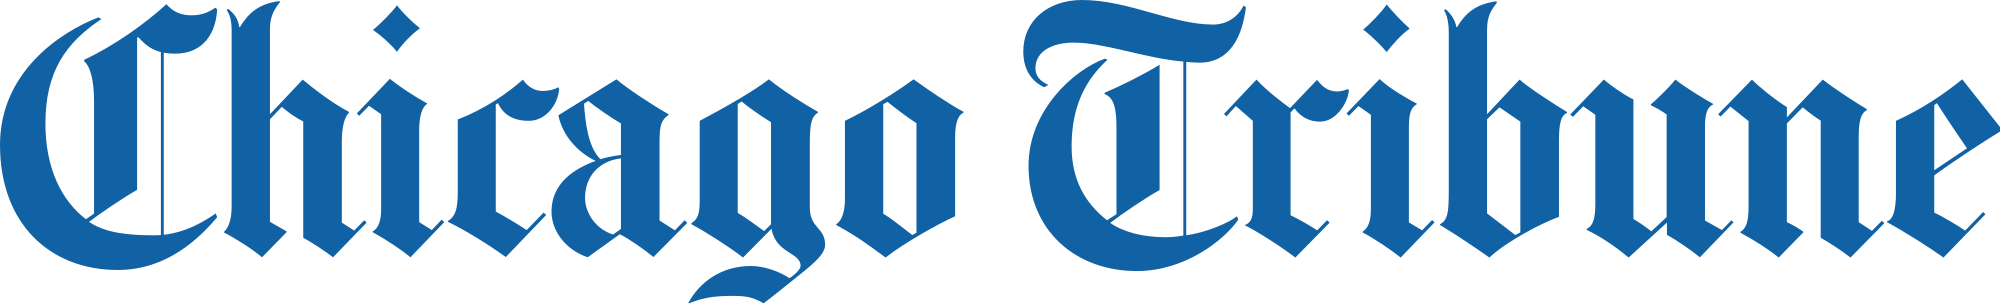 chicago tribune png